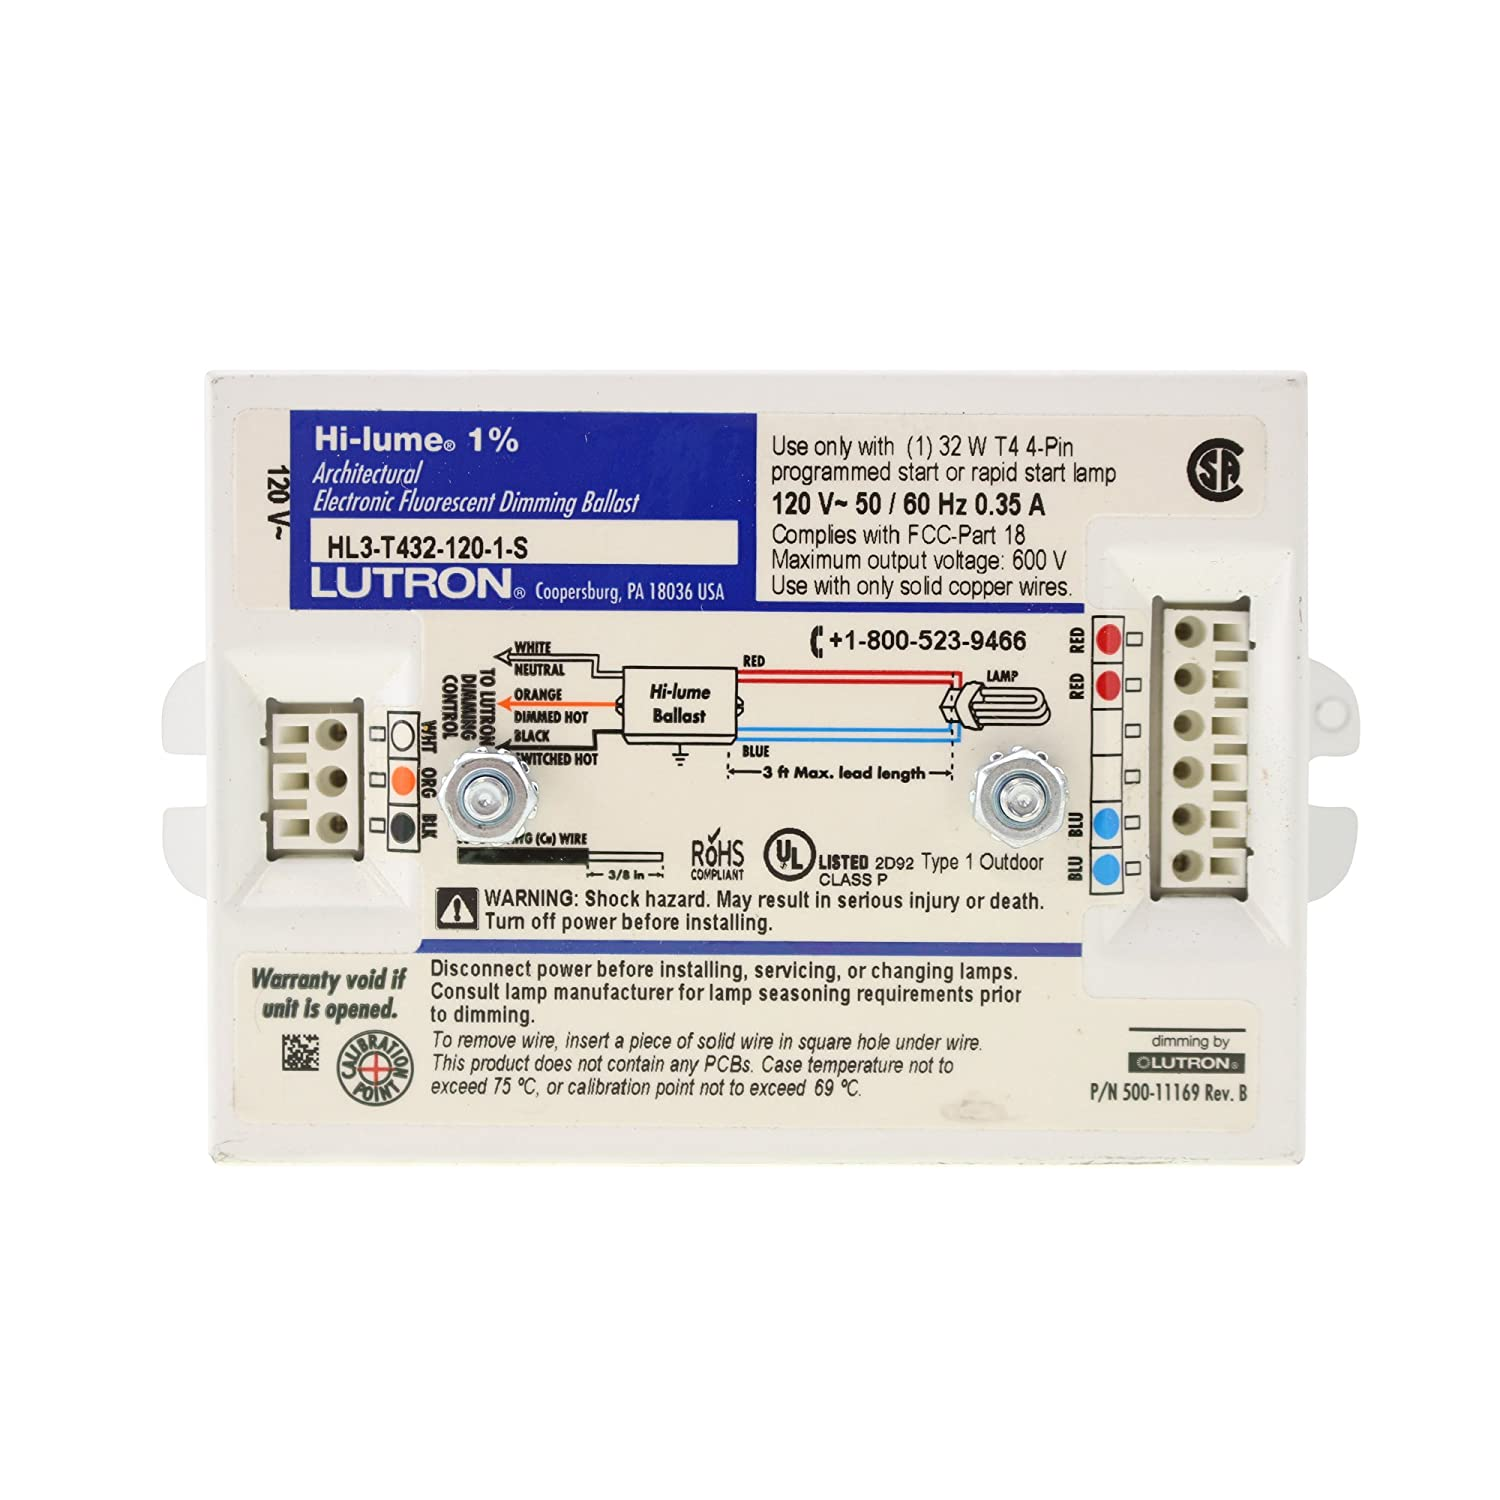 Lutron Hi Lume A Series Wiring Diagram Wire Diagrams 4 Light Rapid Start Ballast Fluorescent Dimming Center U2022 Hl3 T432 120 1 S Architectural Electronic